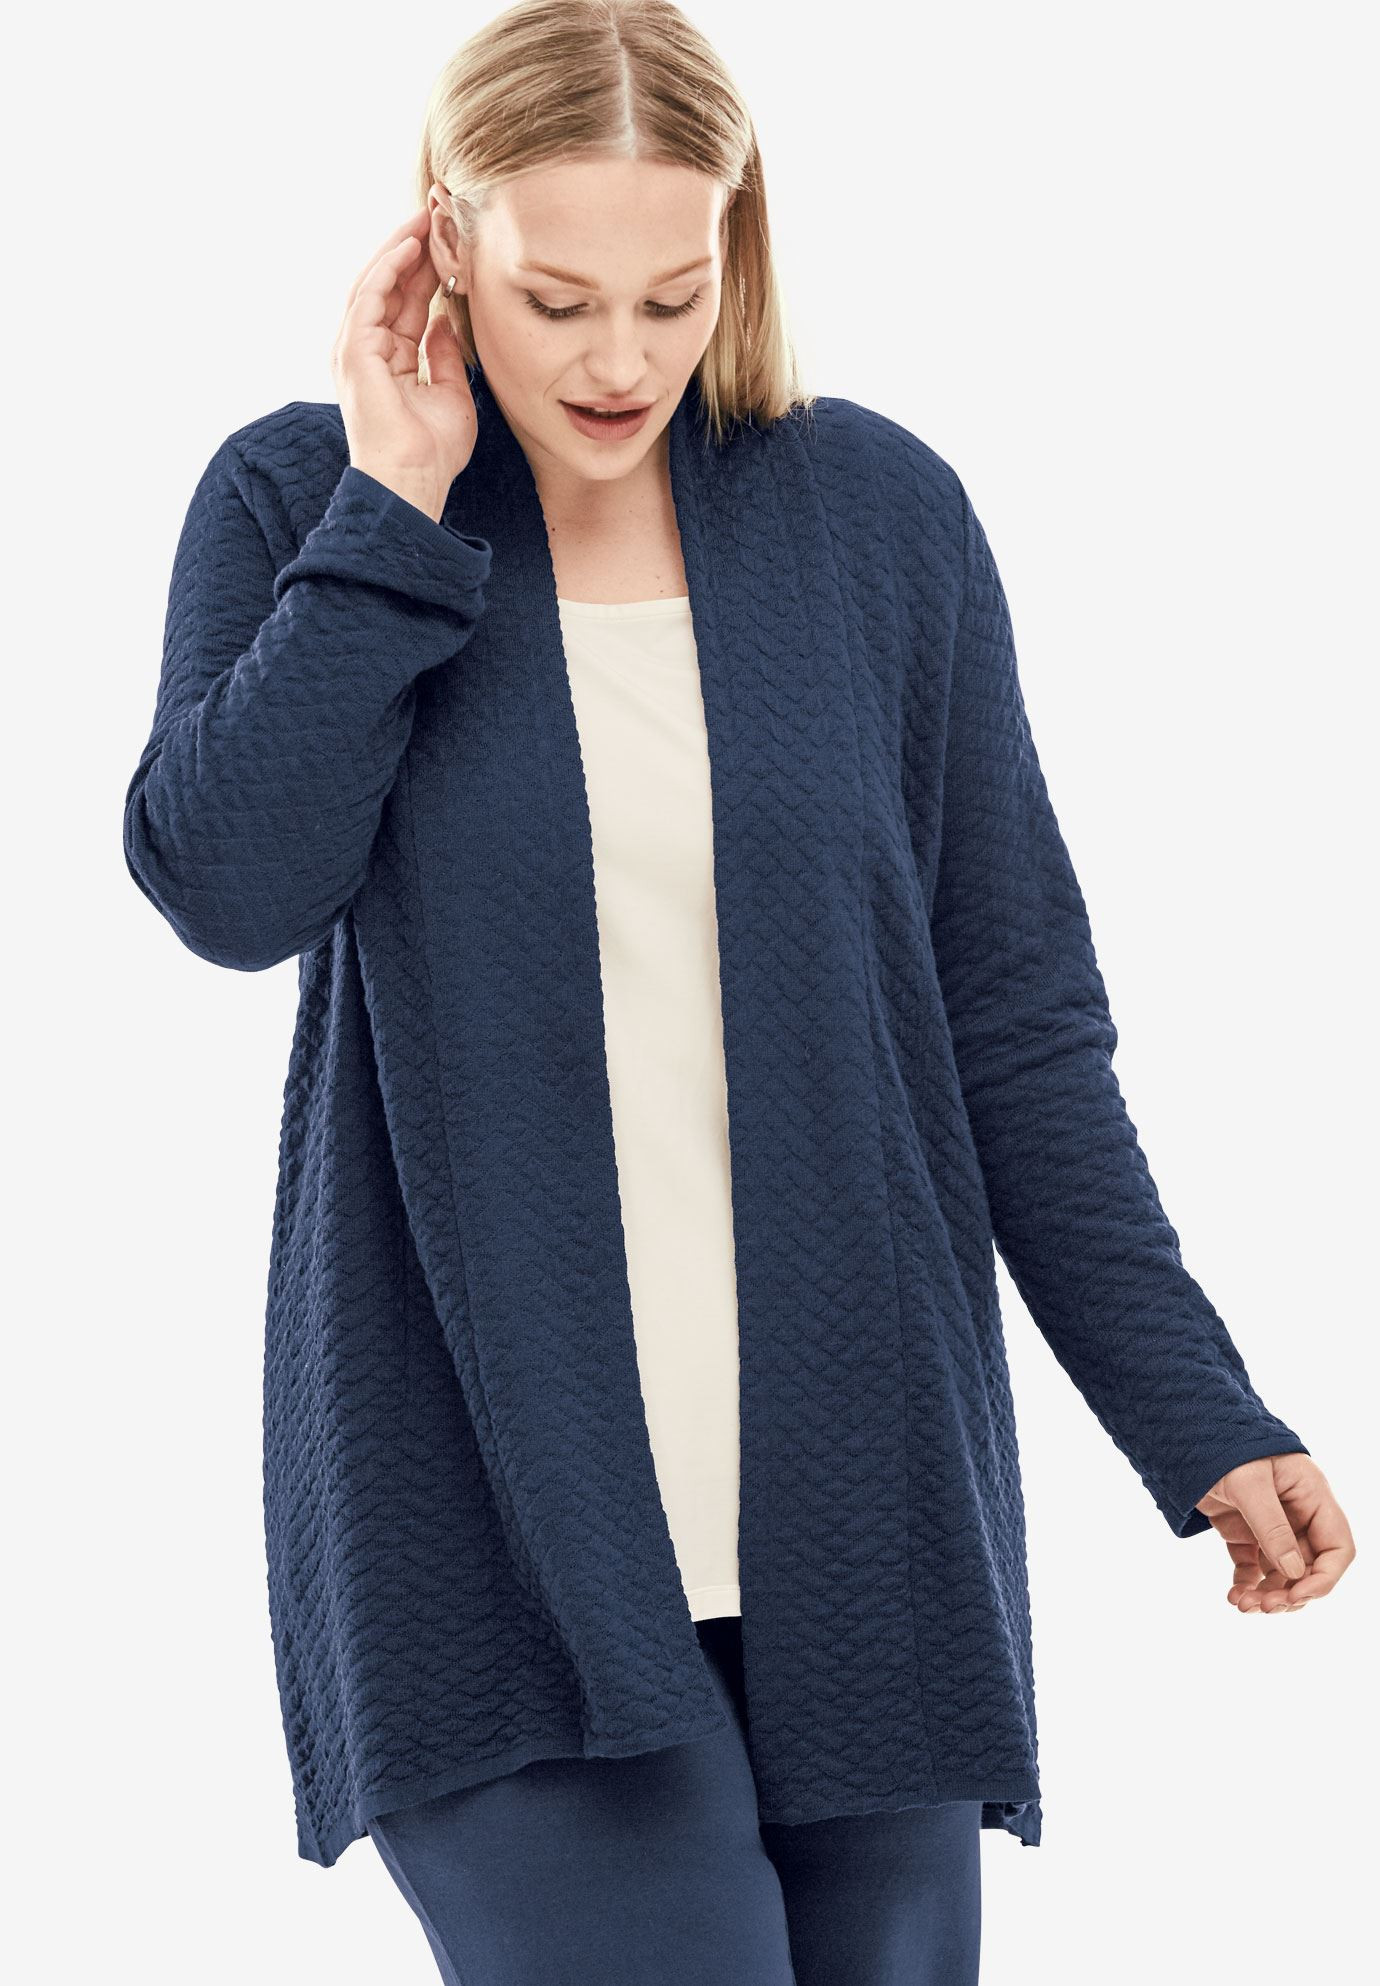 New Plus Size Sweaters Choosing A Fy and Stylish Option Plus Size Crochet Sweater Of Perfect 44 Models Plus Size Crochet Sweater